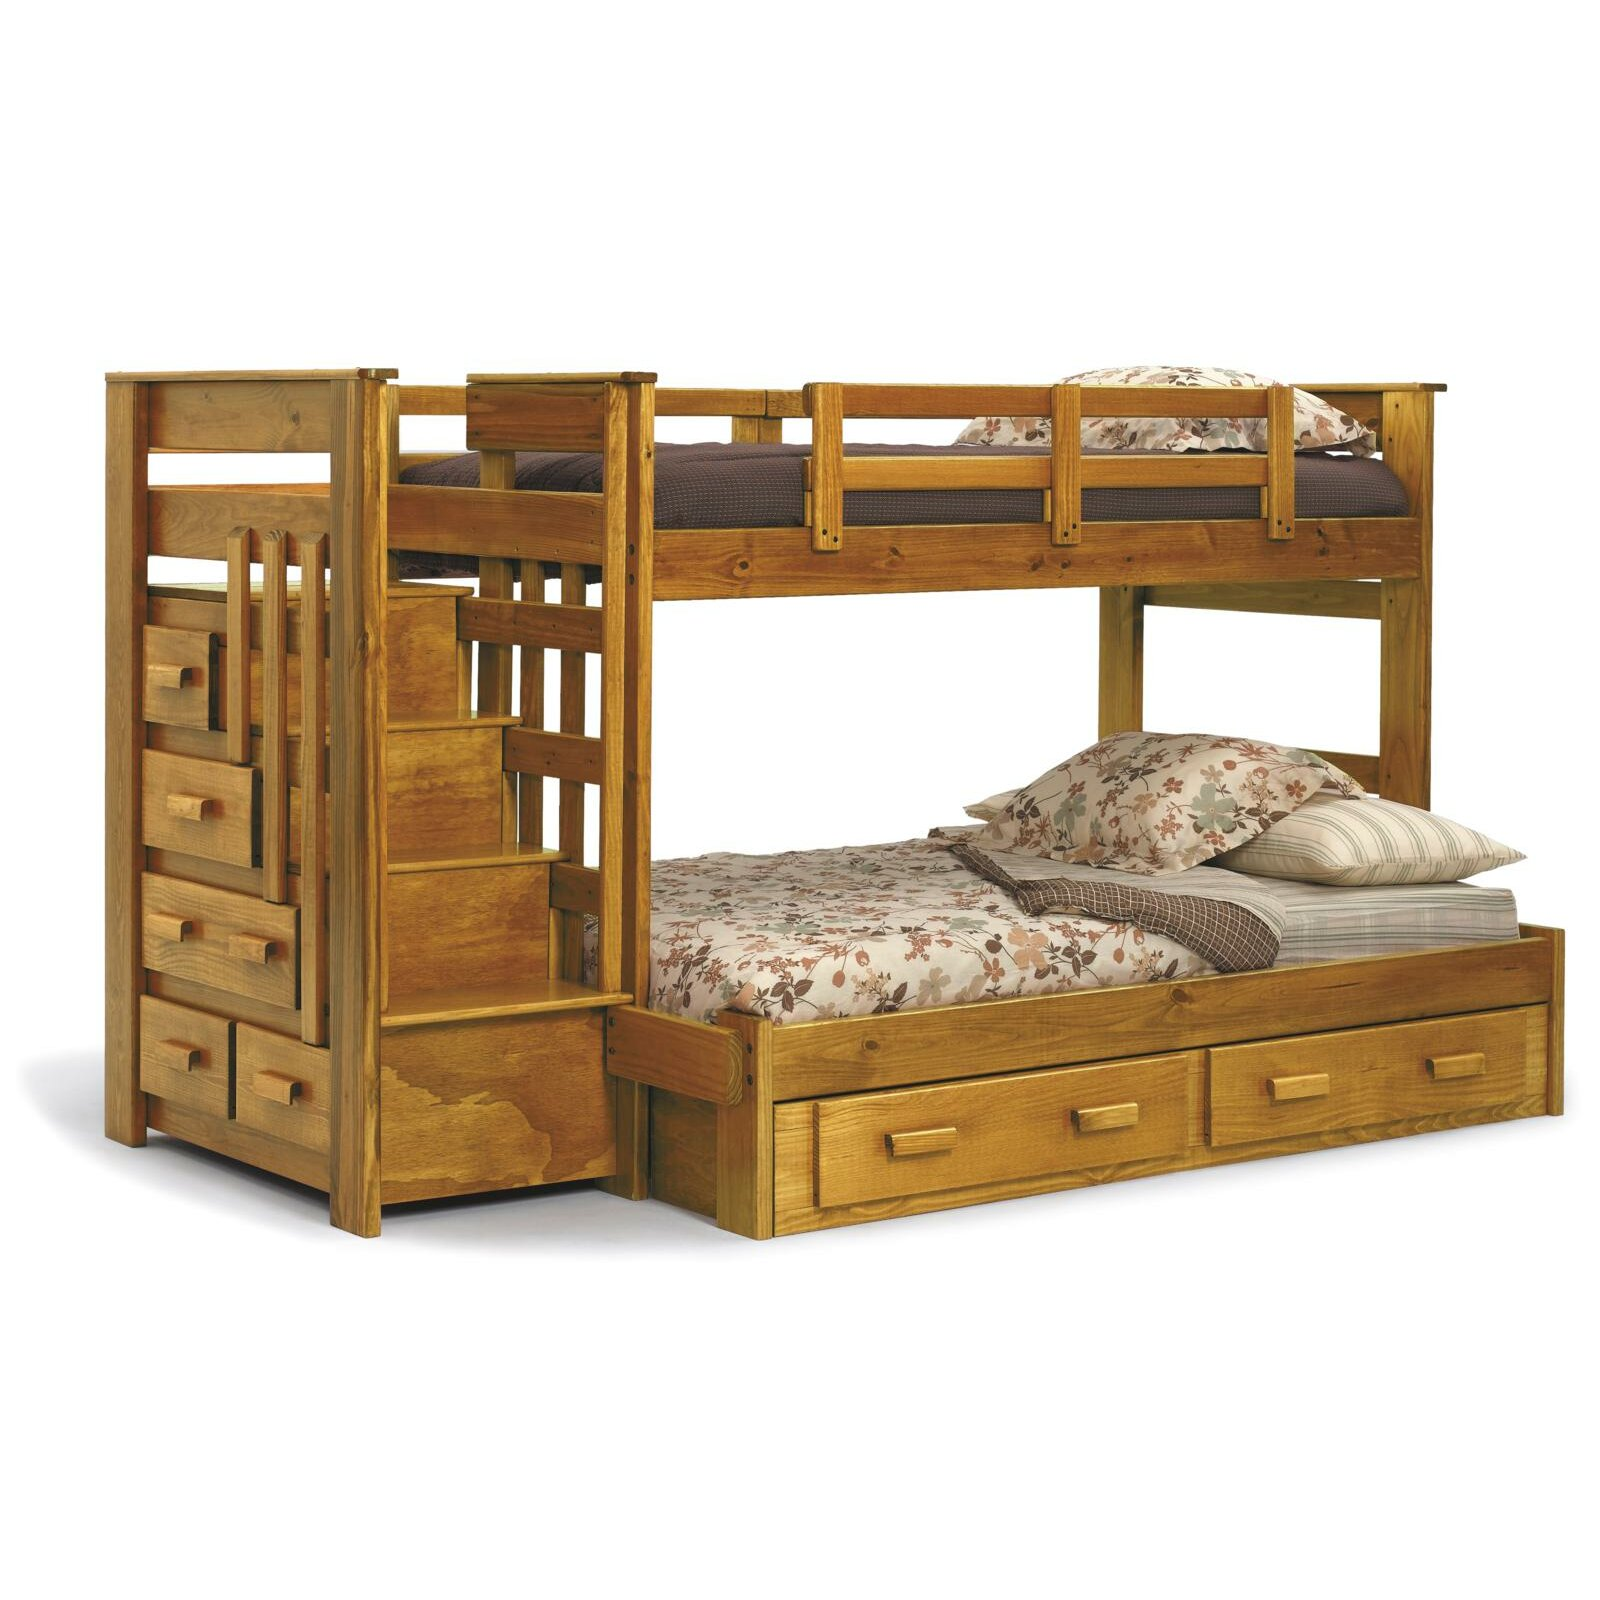 chelsea home twin over full bunk bed with storage reviews wayfair. Black Bedroom Furniture Sets. Home Design Ideas